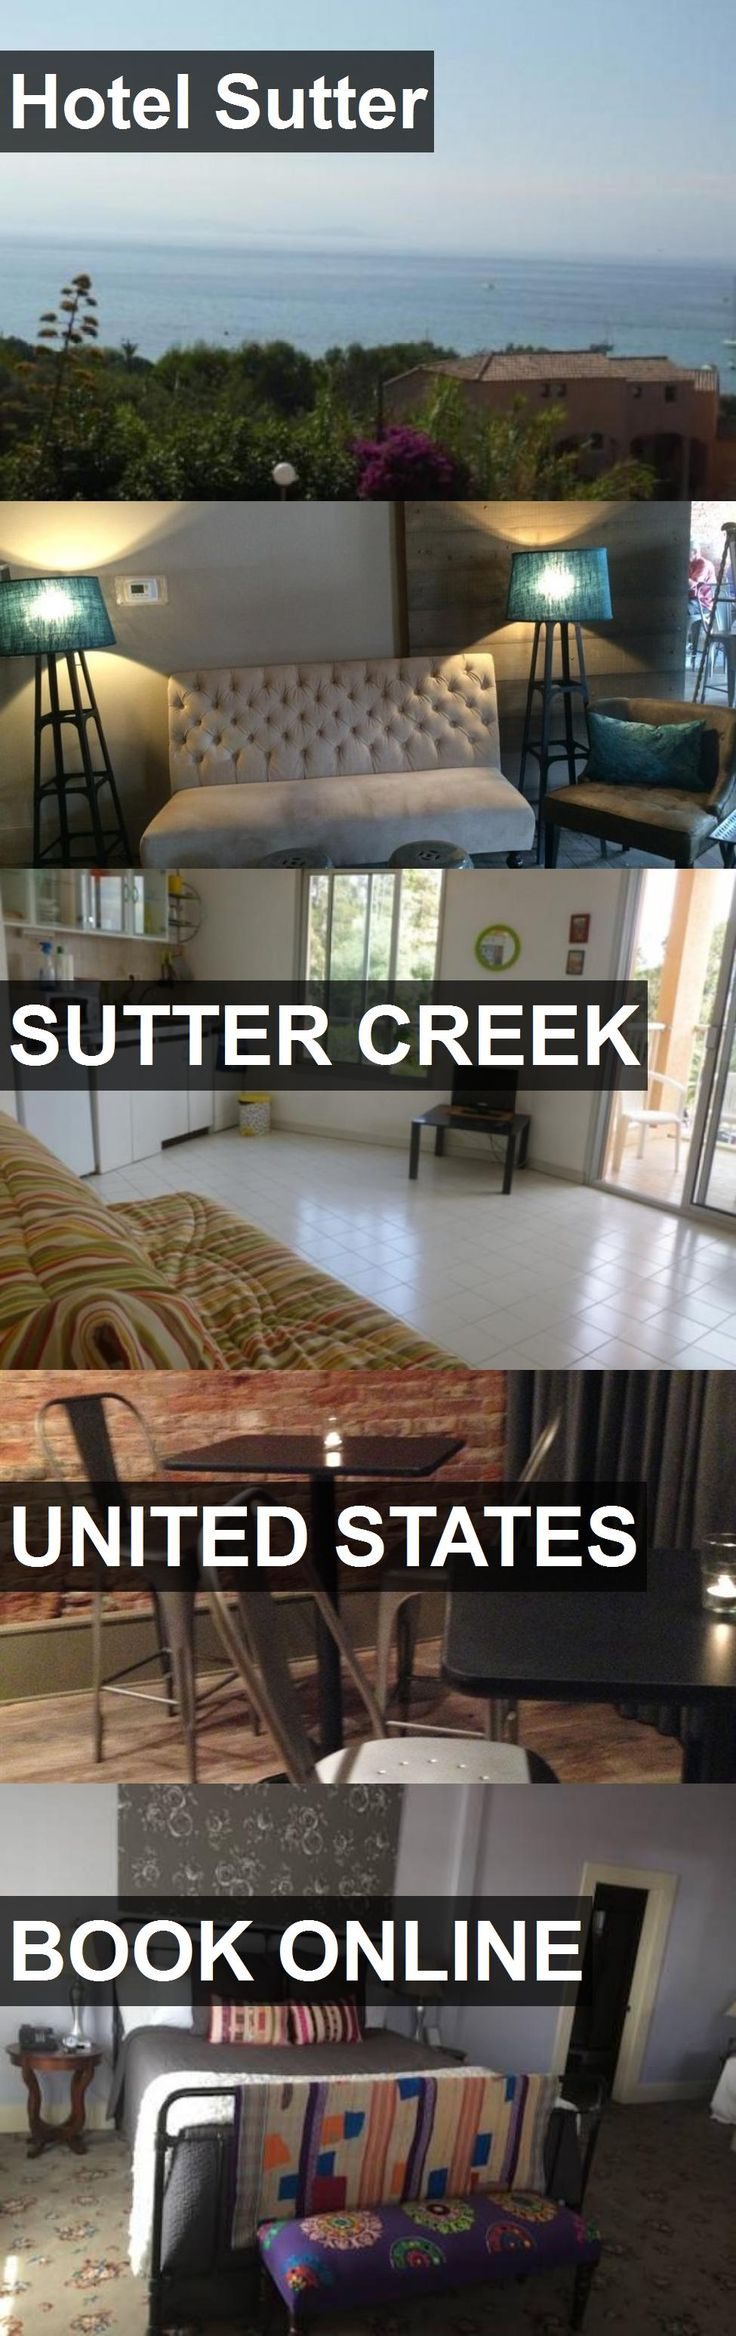 Hotel Sutter in Sutter Creek, United States. For more information, photos, reviews and best prices please follow the link. #UnitedStates #SutterCreek #travel #vacation #hotel